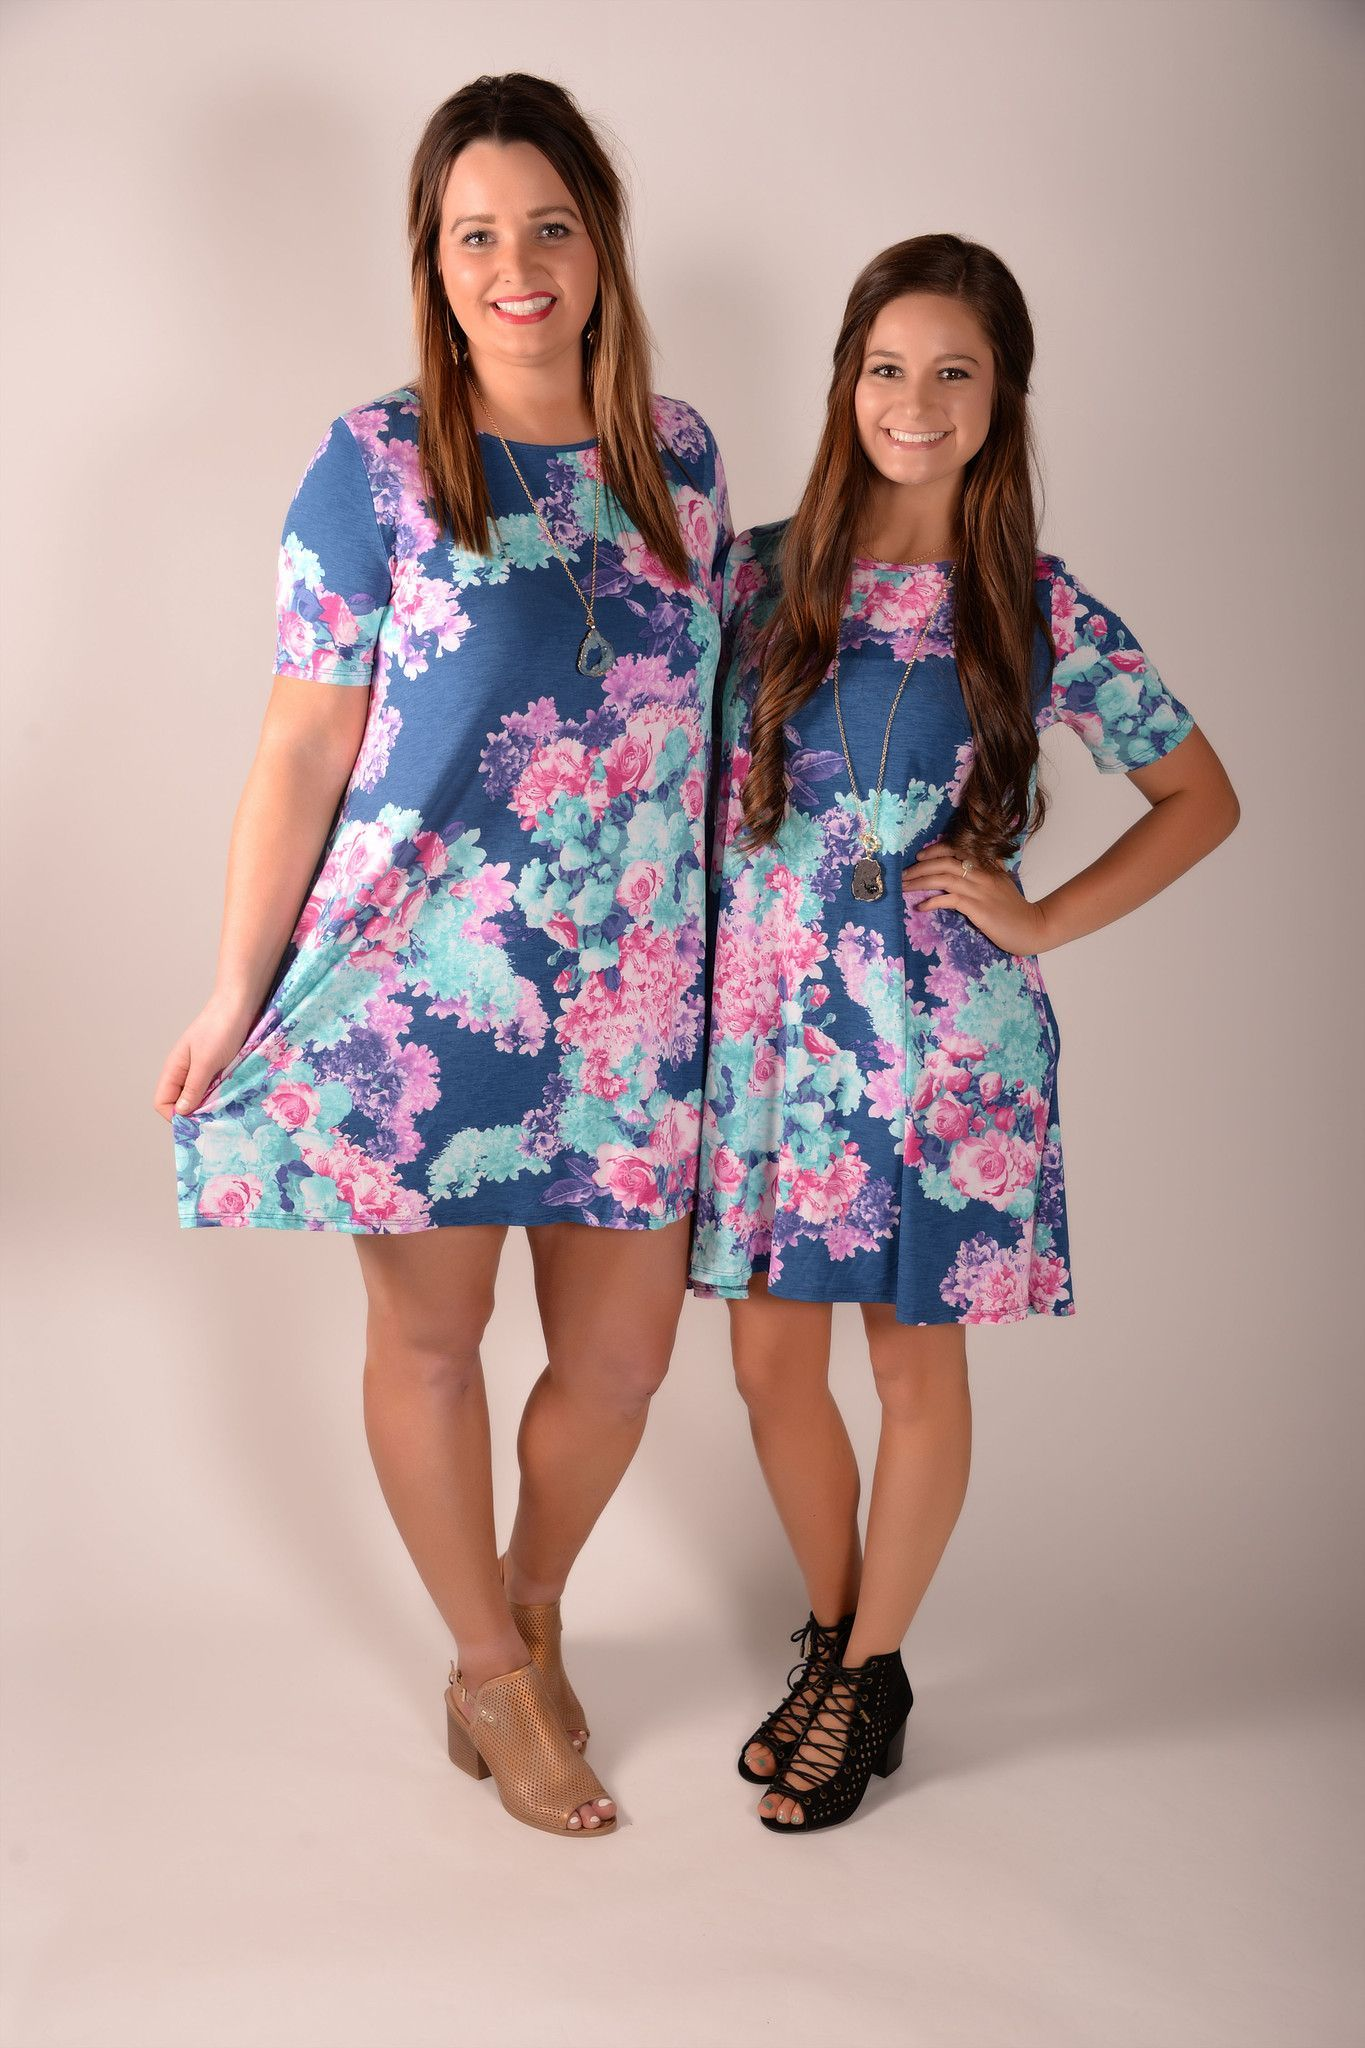 Blooming Romance Navy Floral Dress - D261NV